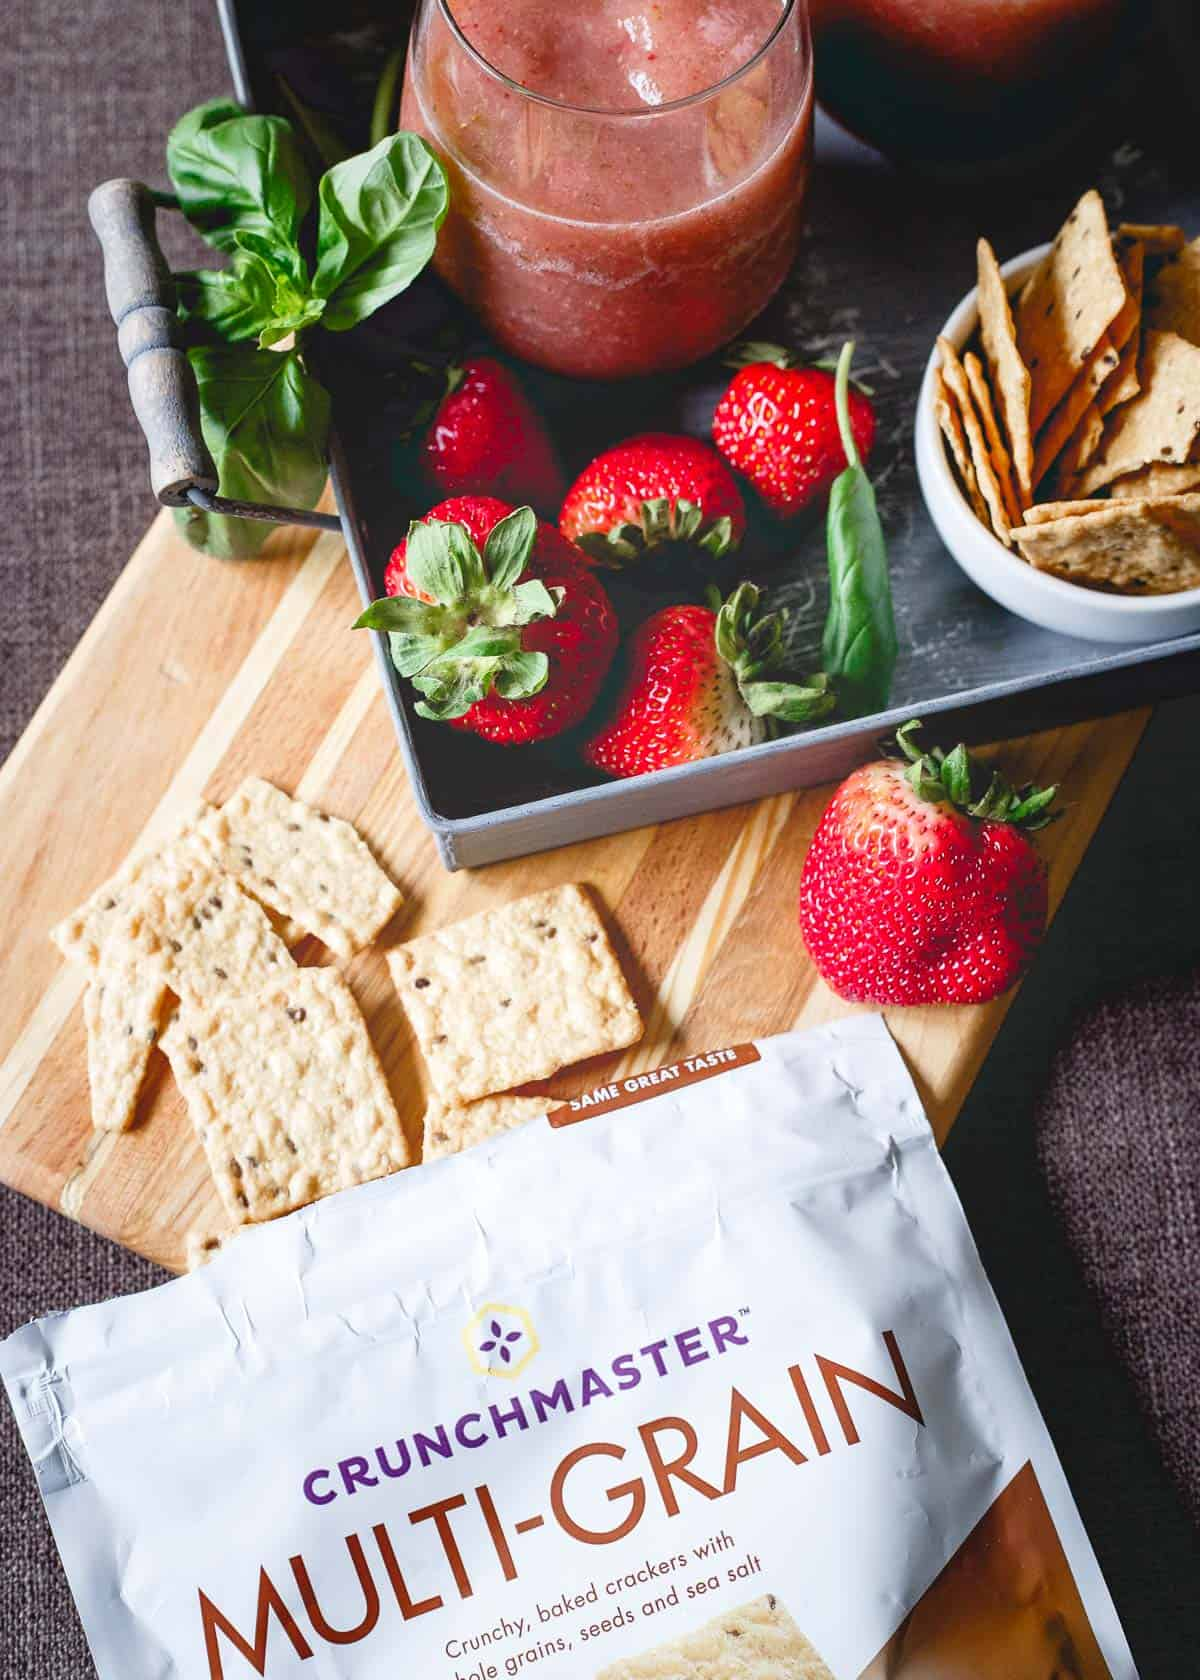 Strawberry Basil Cider Slushies are the perfect summer drink. Pair them with some gluten-free multi-grain Crunchmaster crackers for an easy happy hour!